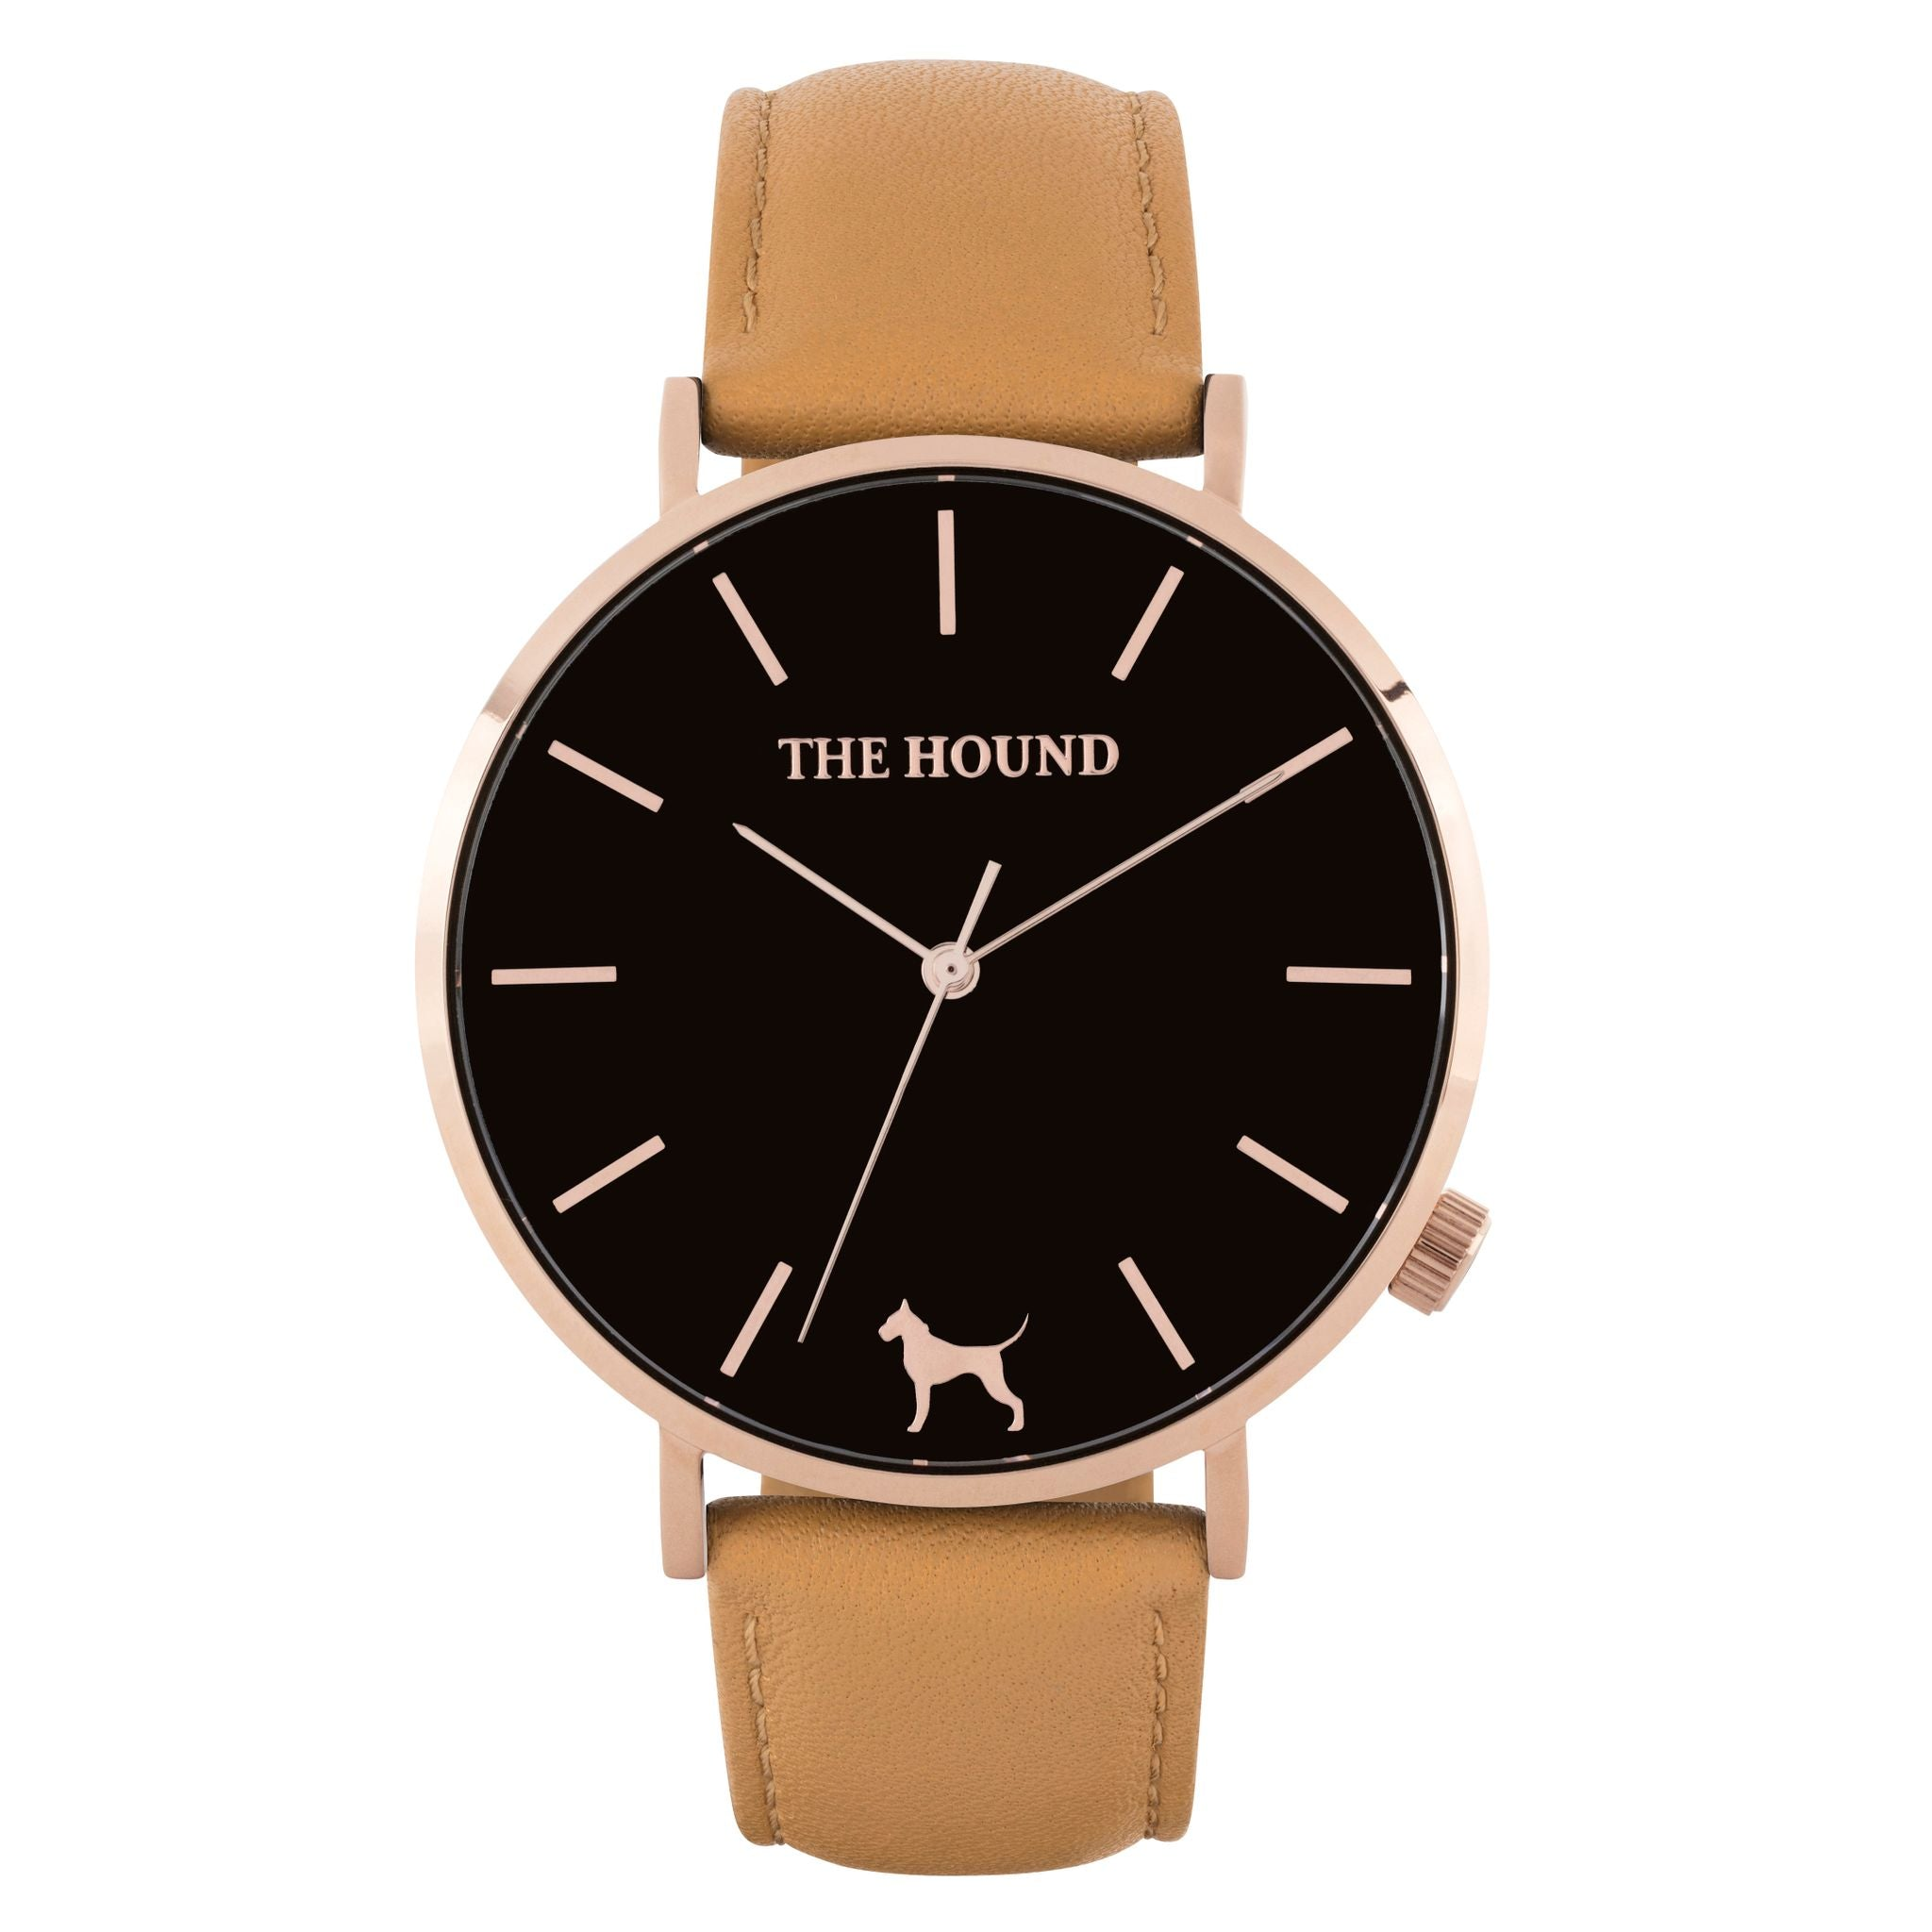 Rose gold & black face watch with camel leather